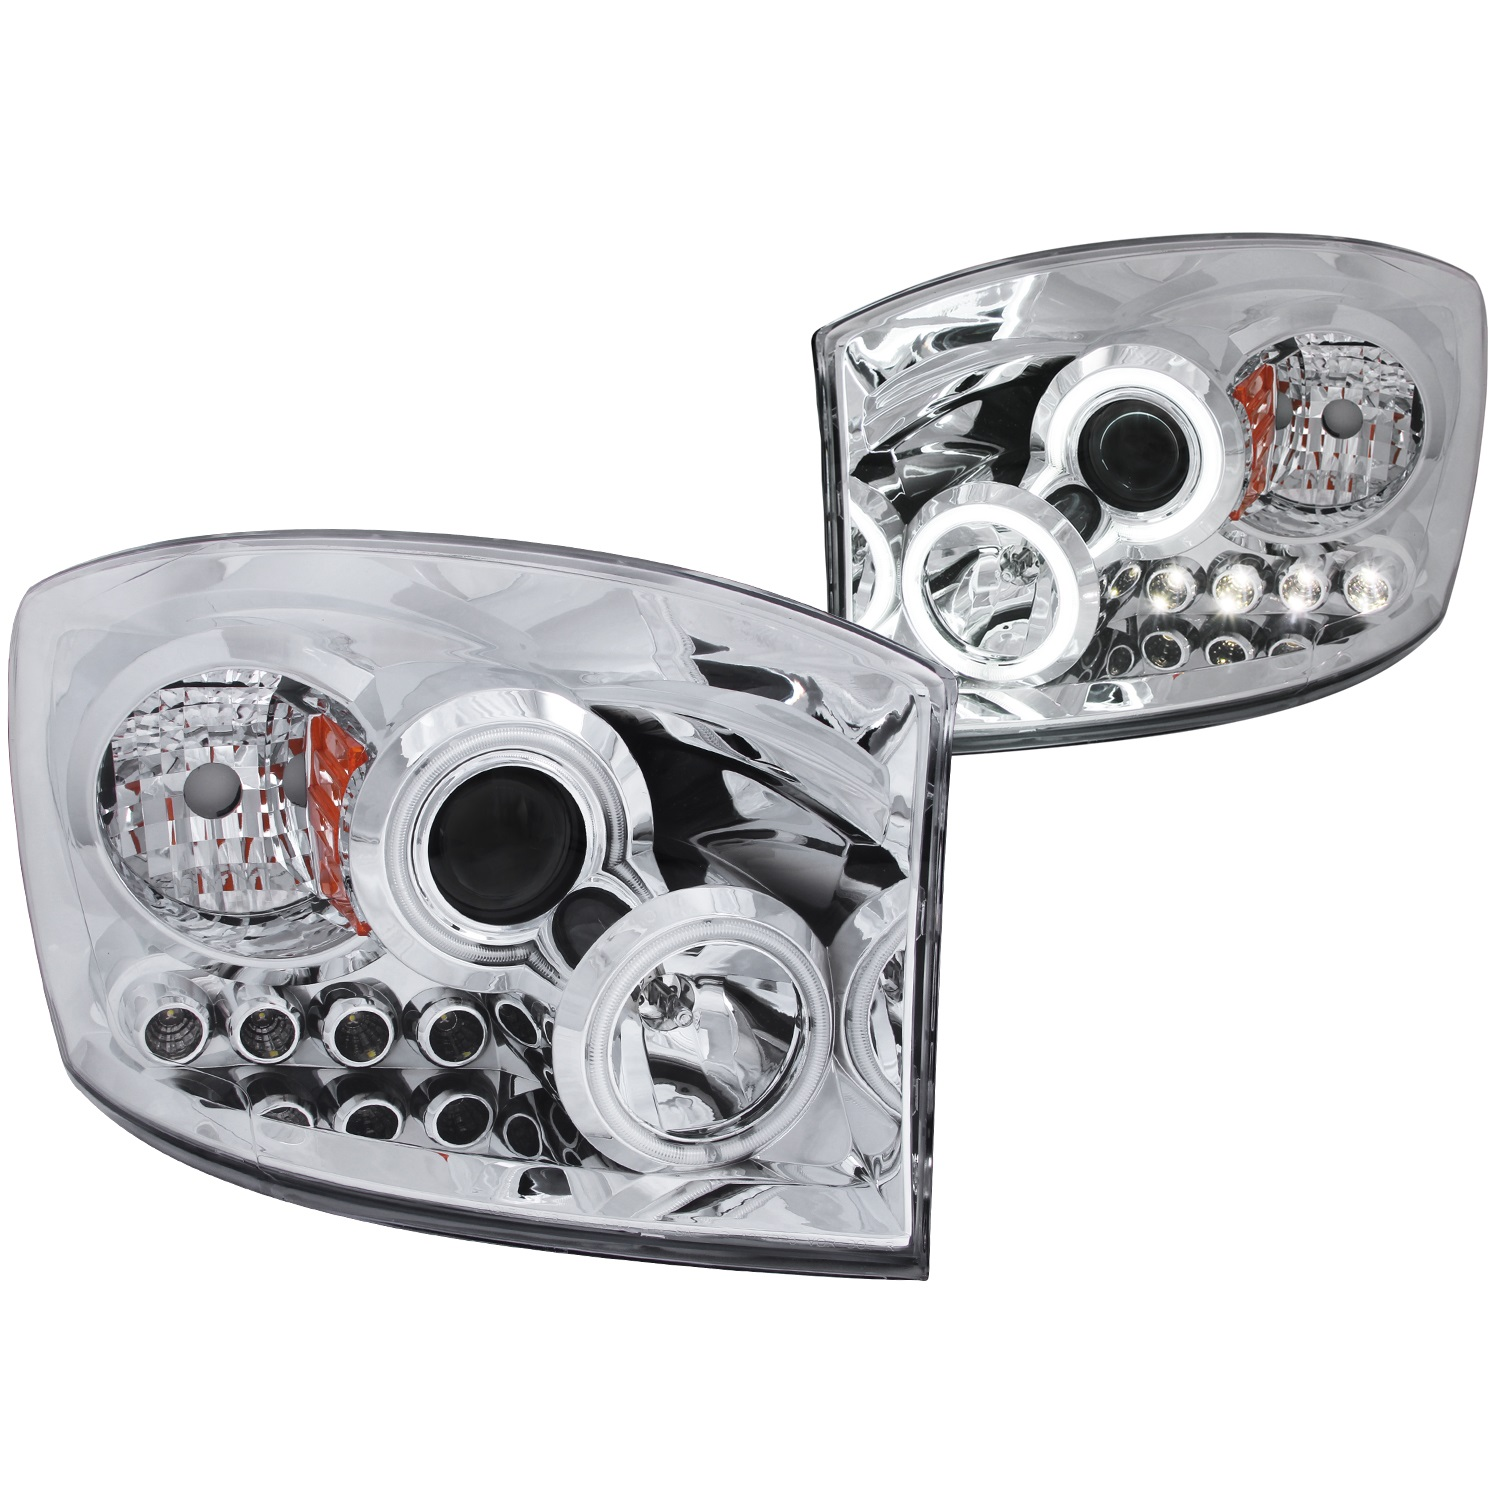 Anzo USA 111103 Projector Headlight Set w/Halo Fits Ram 1500 Ram 2500 Ram 3500